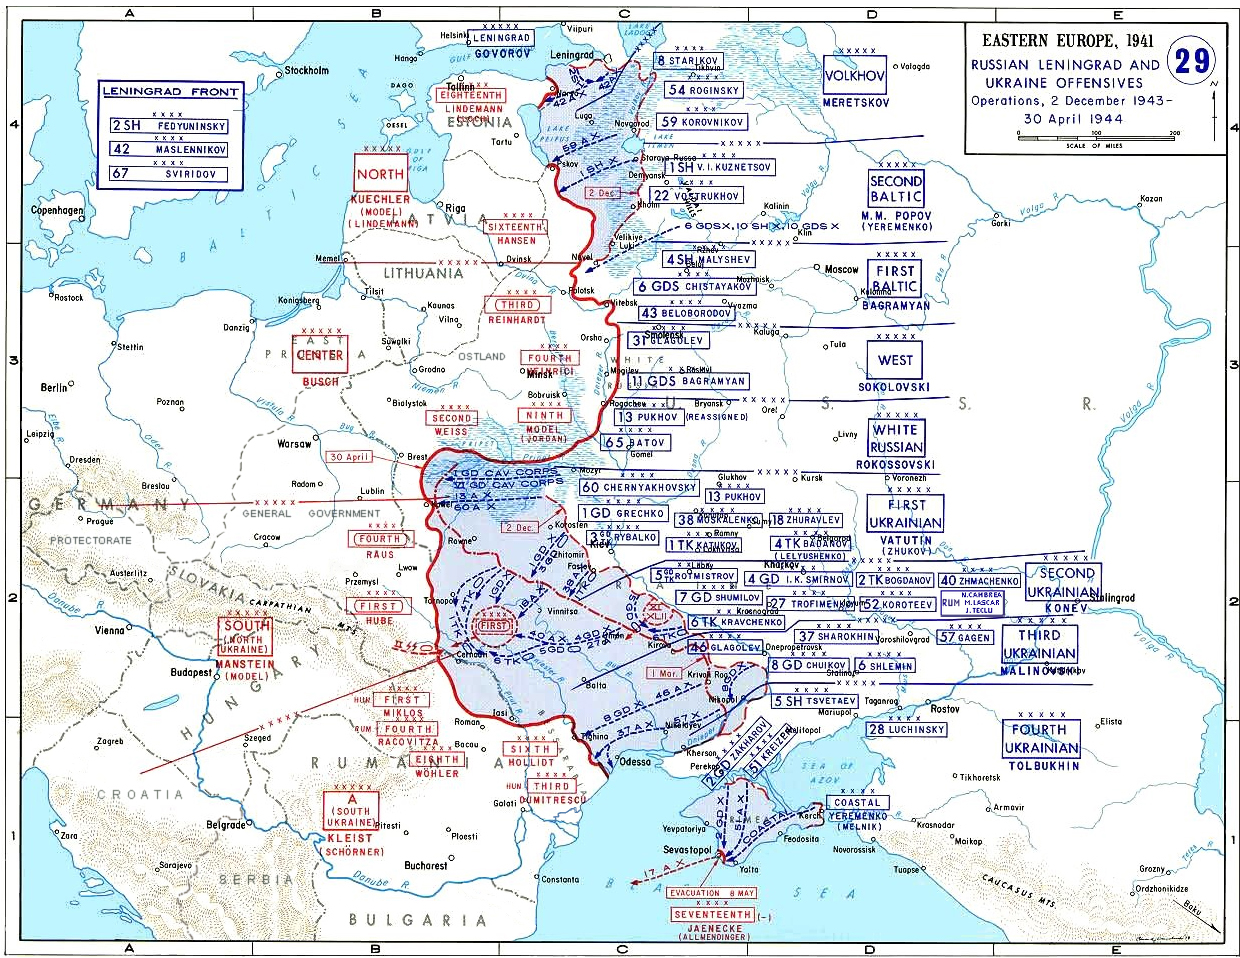 Korsun Pocket The Encirclement and Breakout of a German Army in the East 1944